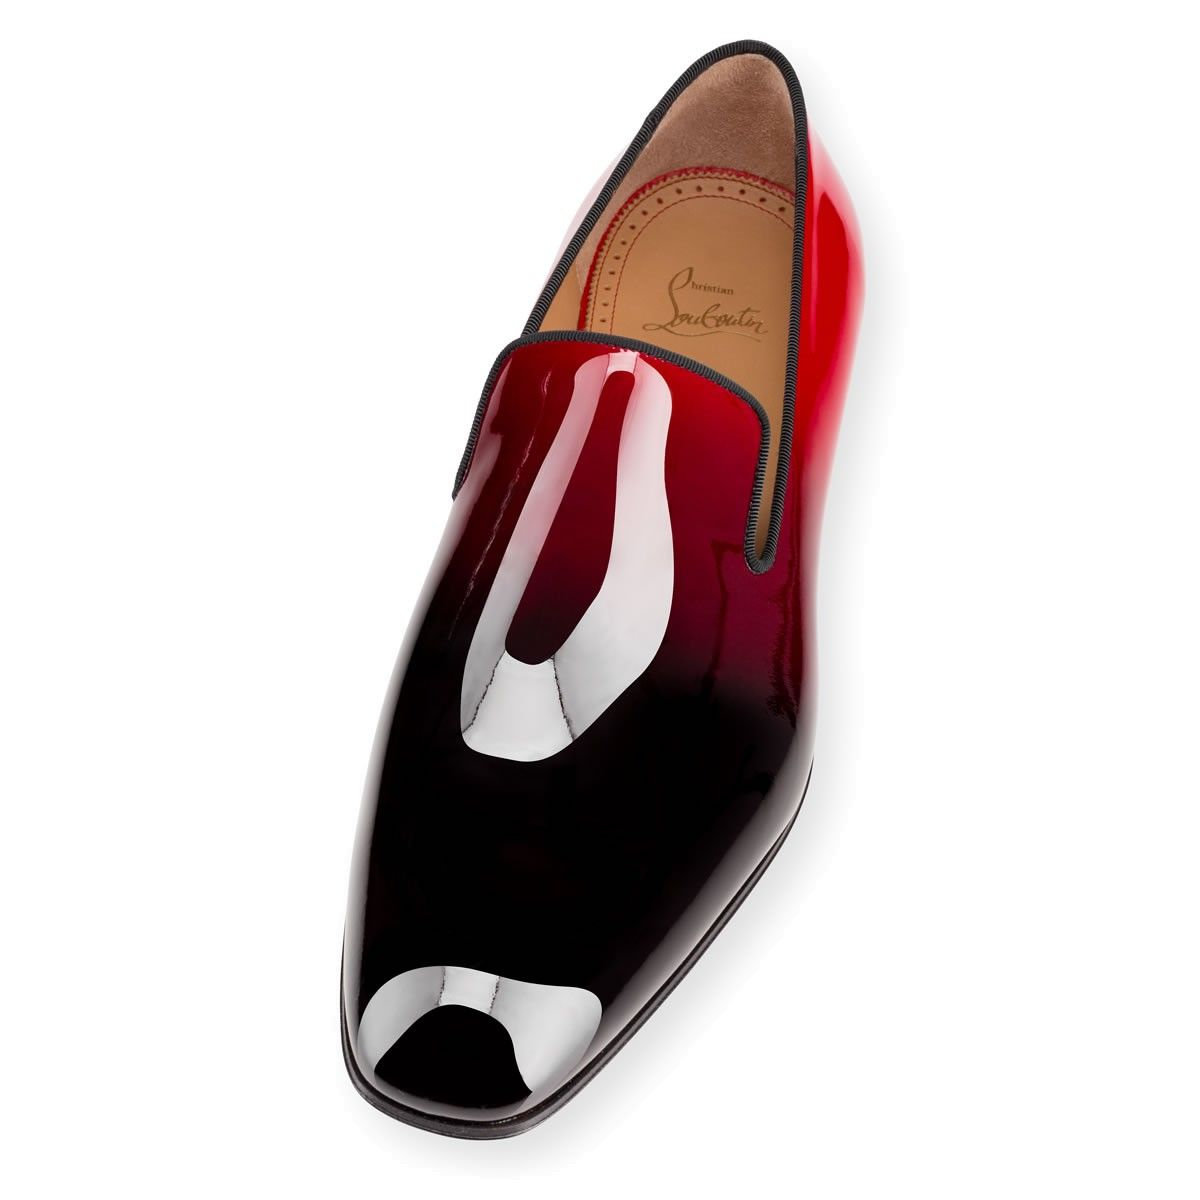 125df7be4c86 FEET  Men s Dandelion Flat loafers by Christian Louboutin. Black-to-red  dégradé patent leather.